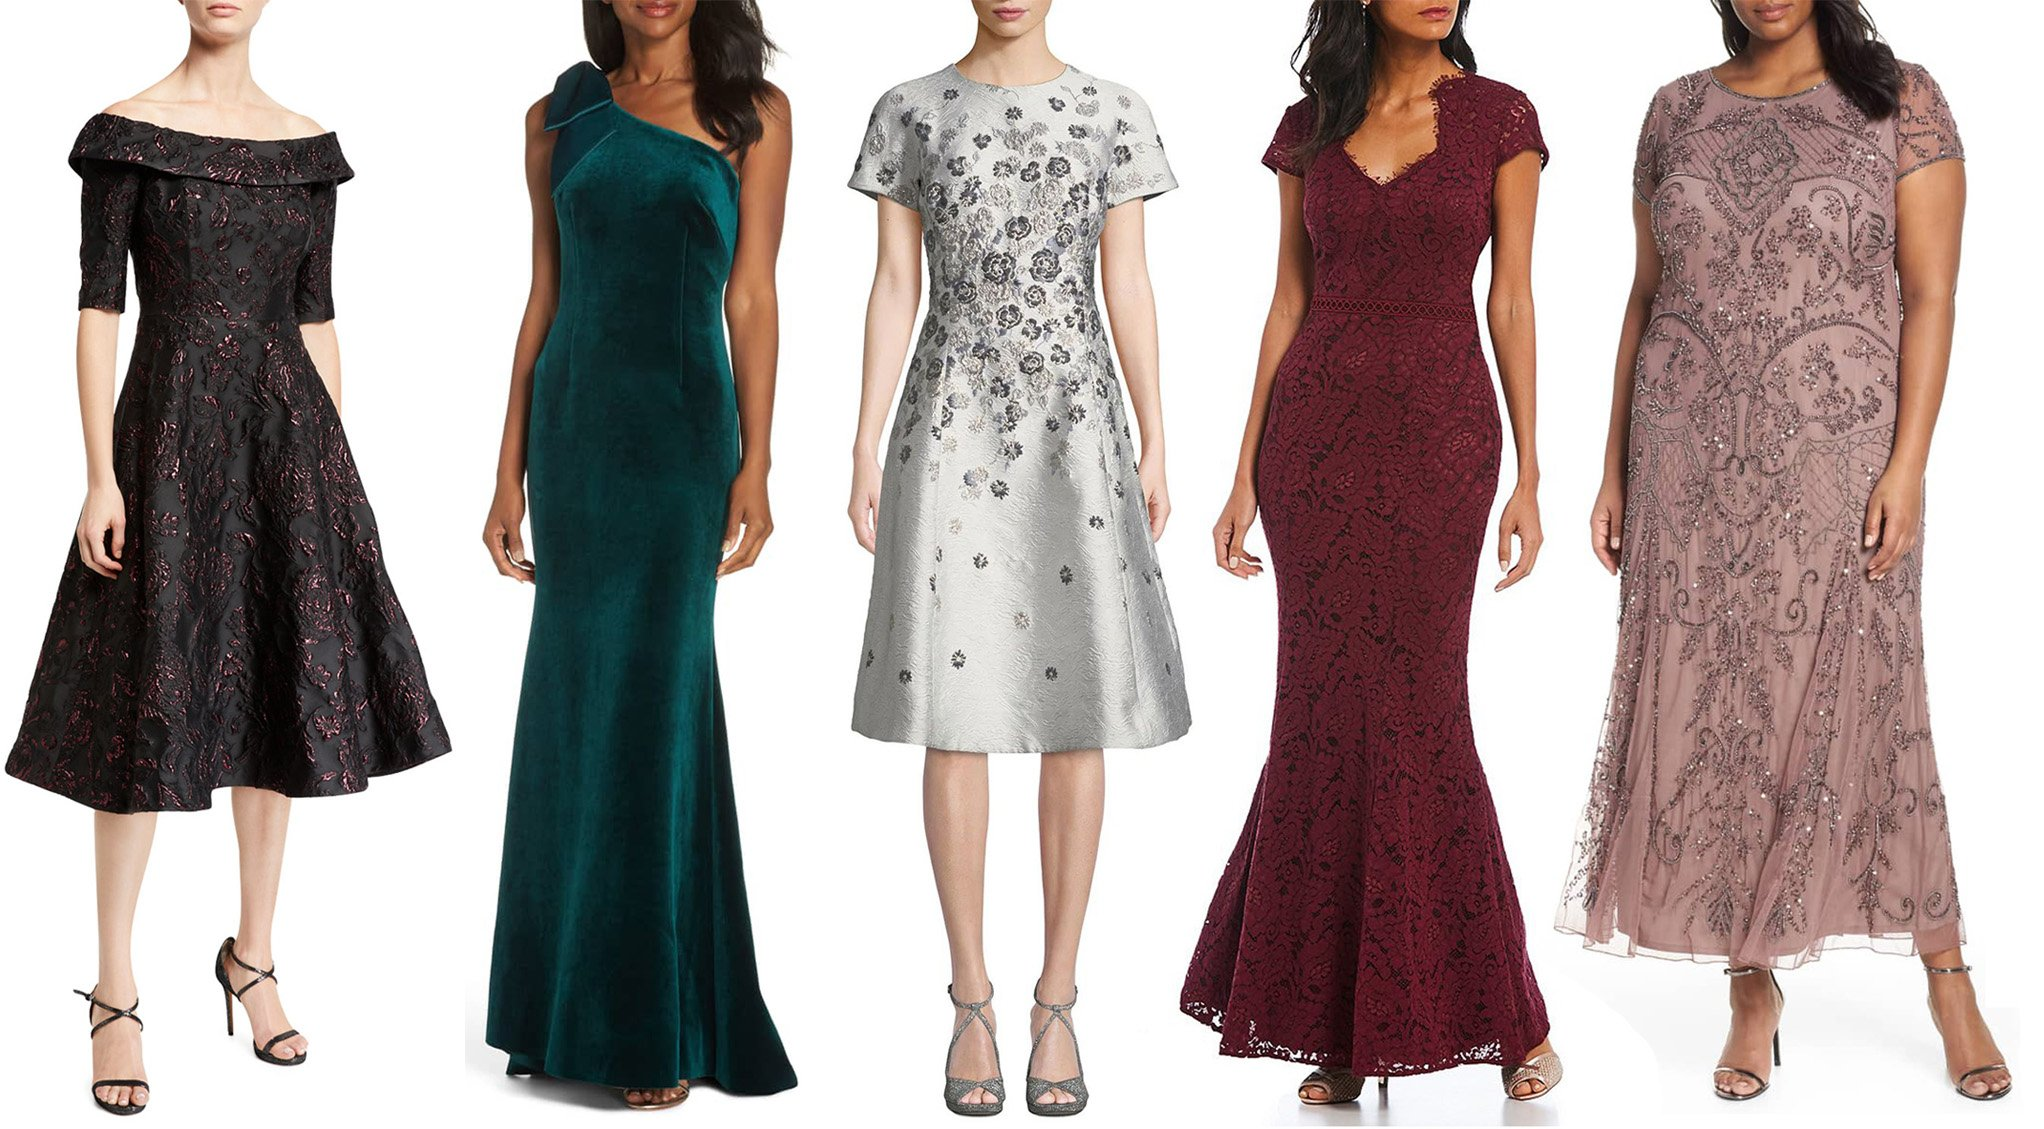 Mother Of The Bride Dresses And Jewelry Pieces For A Fabulous Look